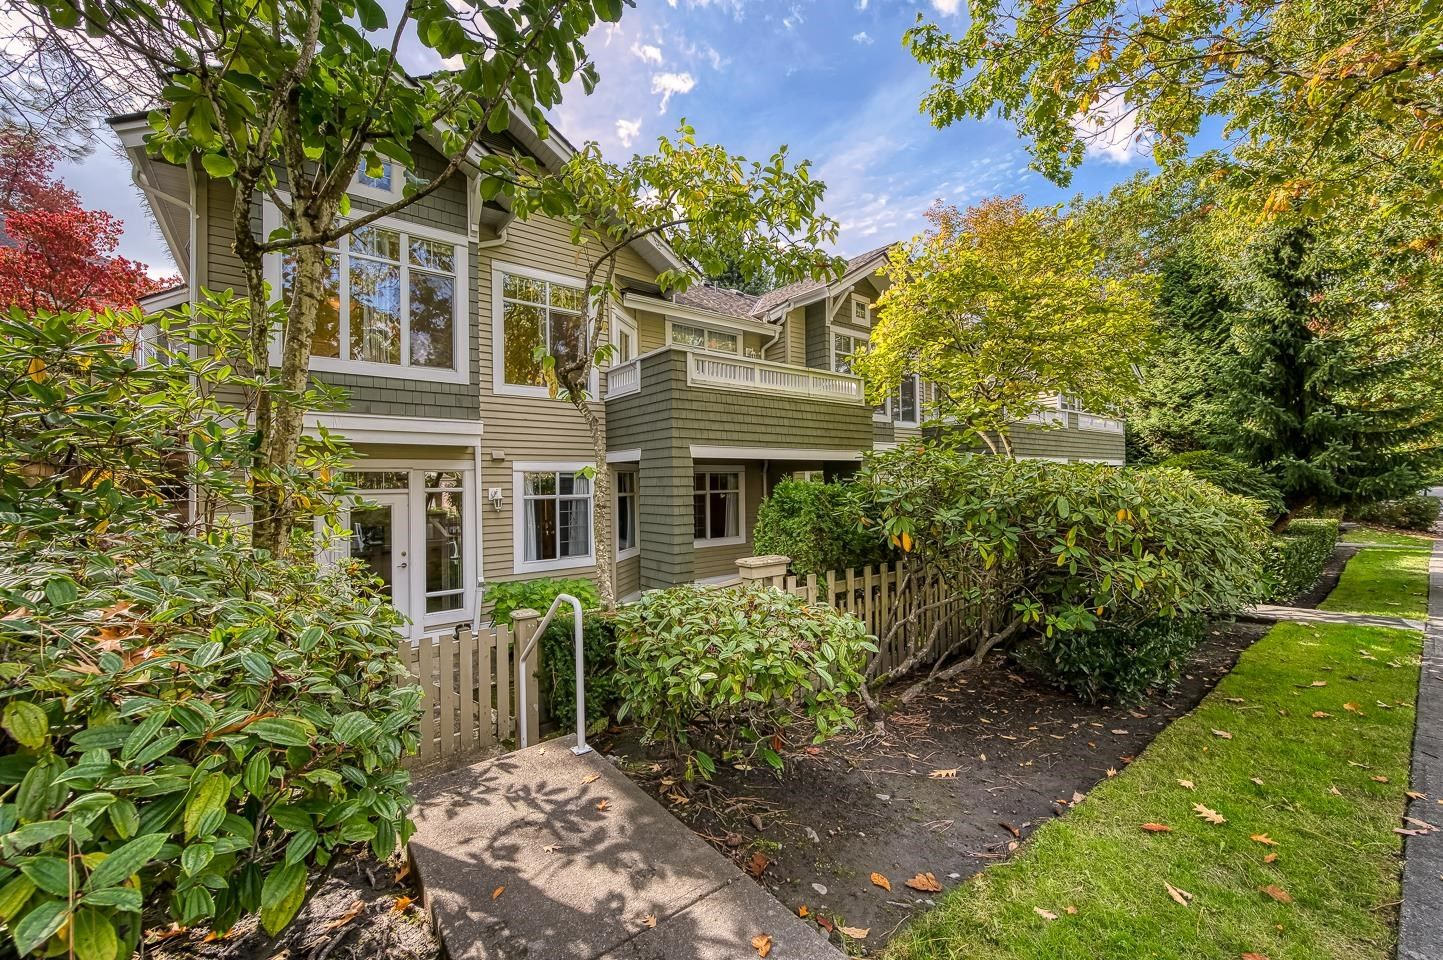 """Main Photo: 10 5240 OAKMOUNT Crescent in Burnaby: Oaklands Townhouse for sale in """"Santa Clara"""" (Burnaby South)  : MLS®# R2622975"""